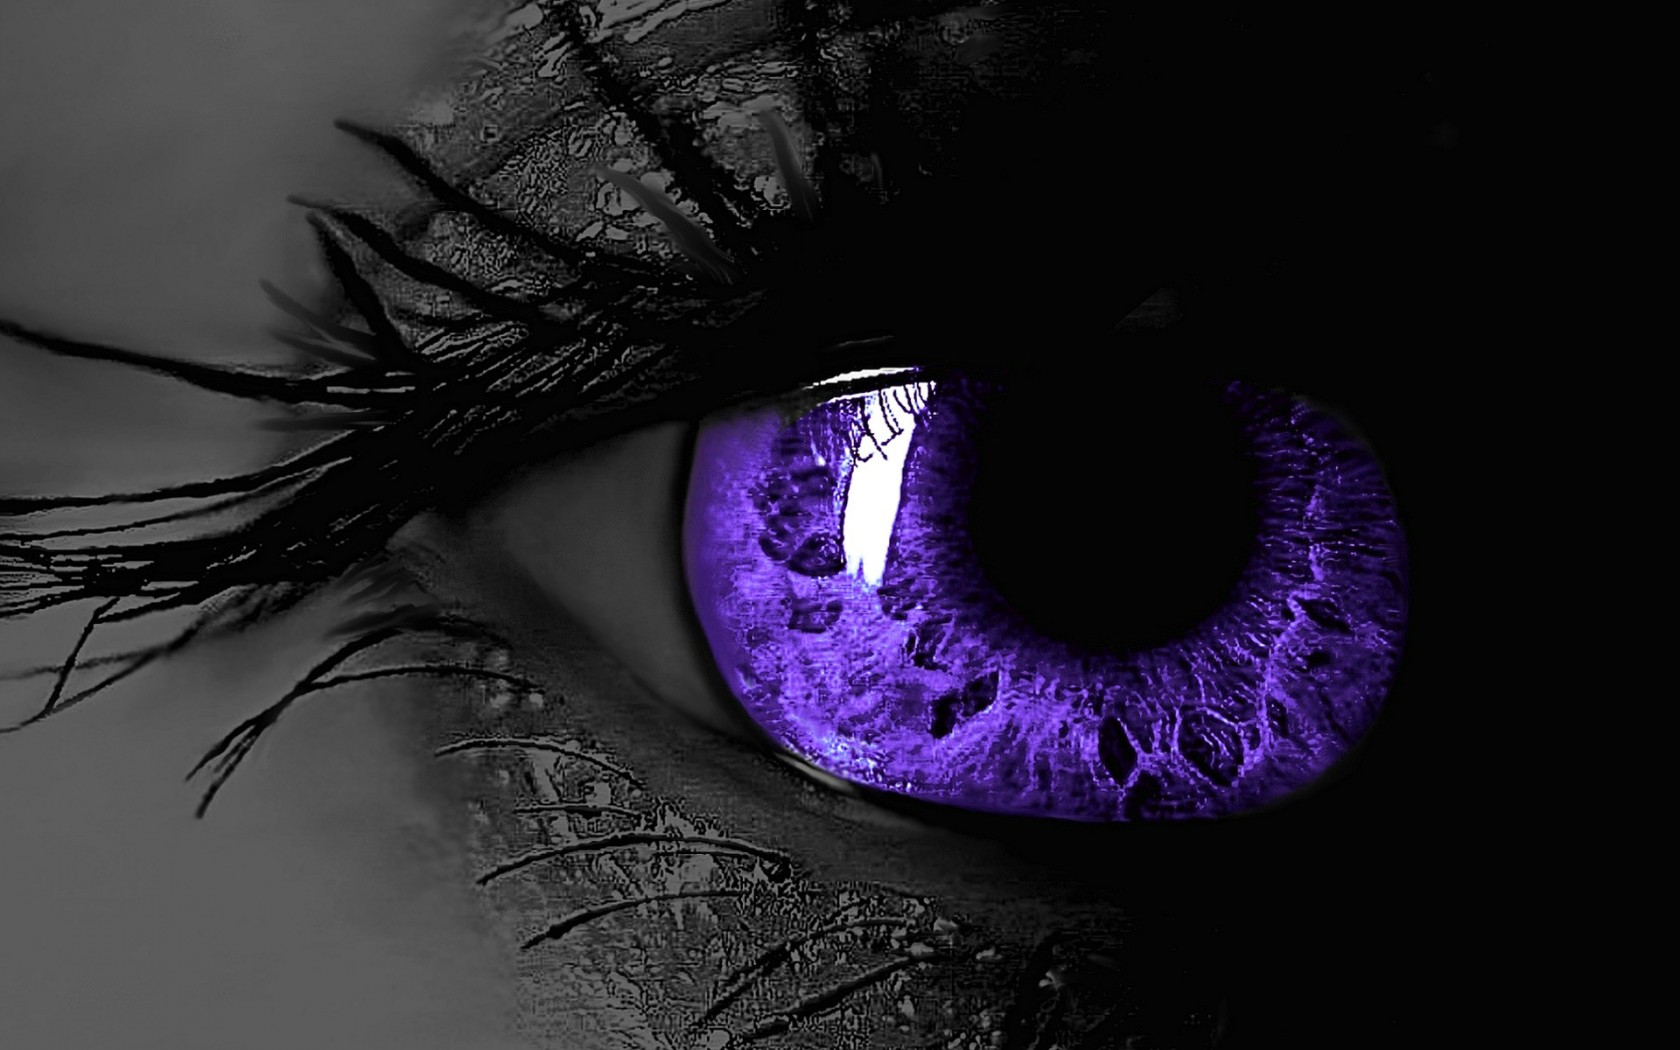 Free Download Black And Purple Wallpaper Hd 2381 Hd Wallpapers